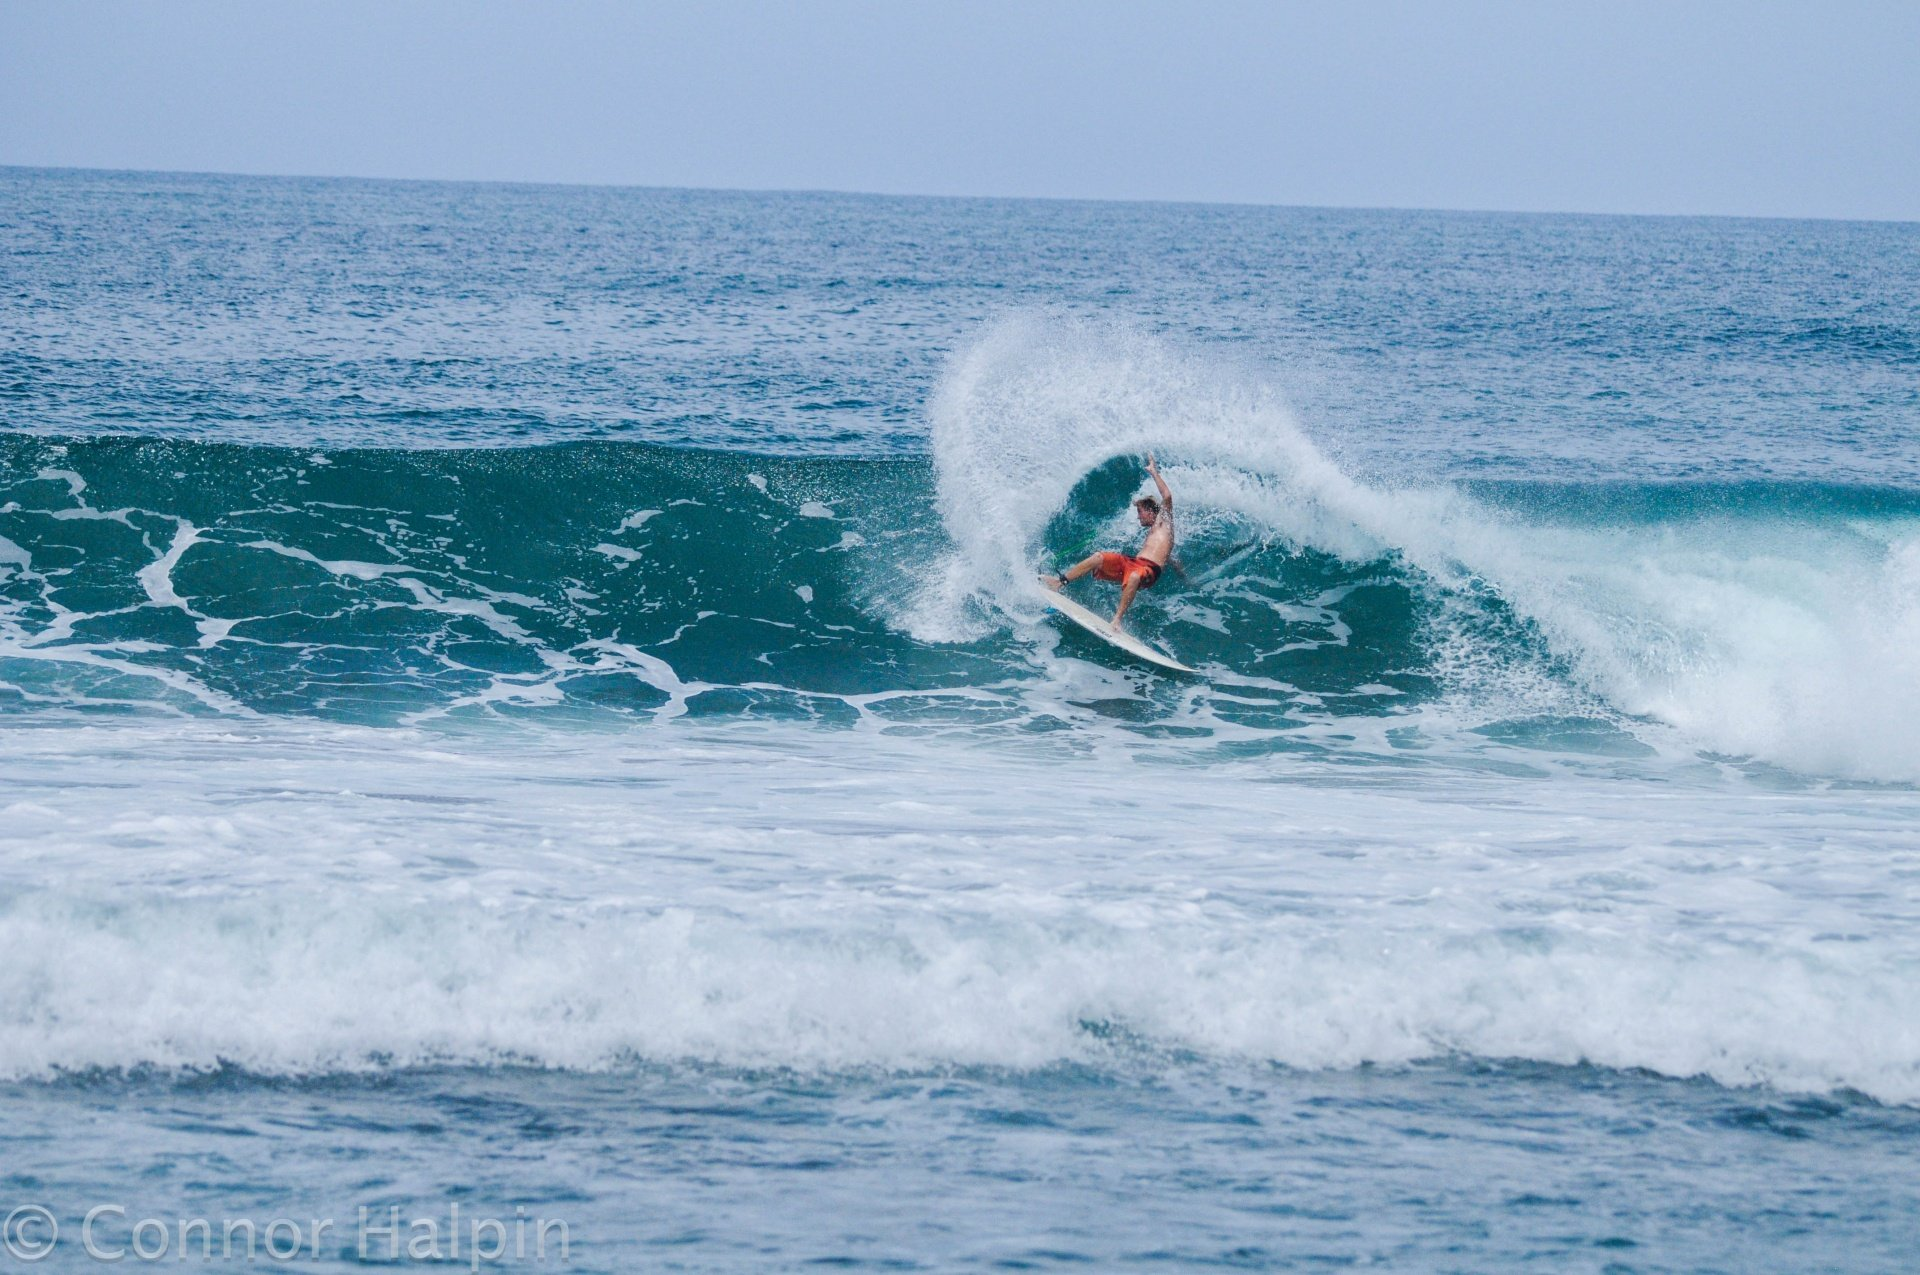 Connor Halpin's photo of Playa Hermosa